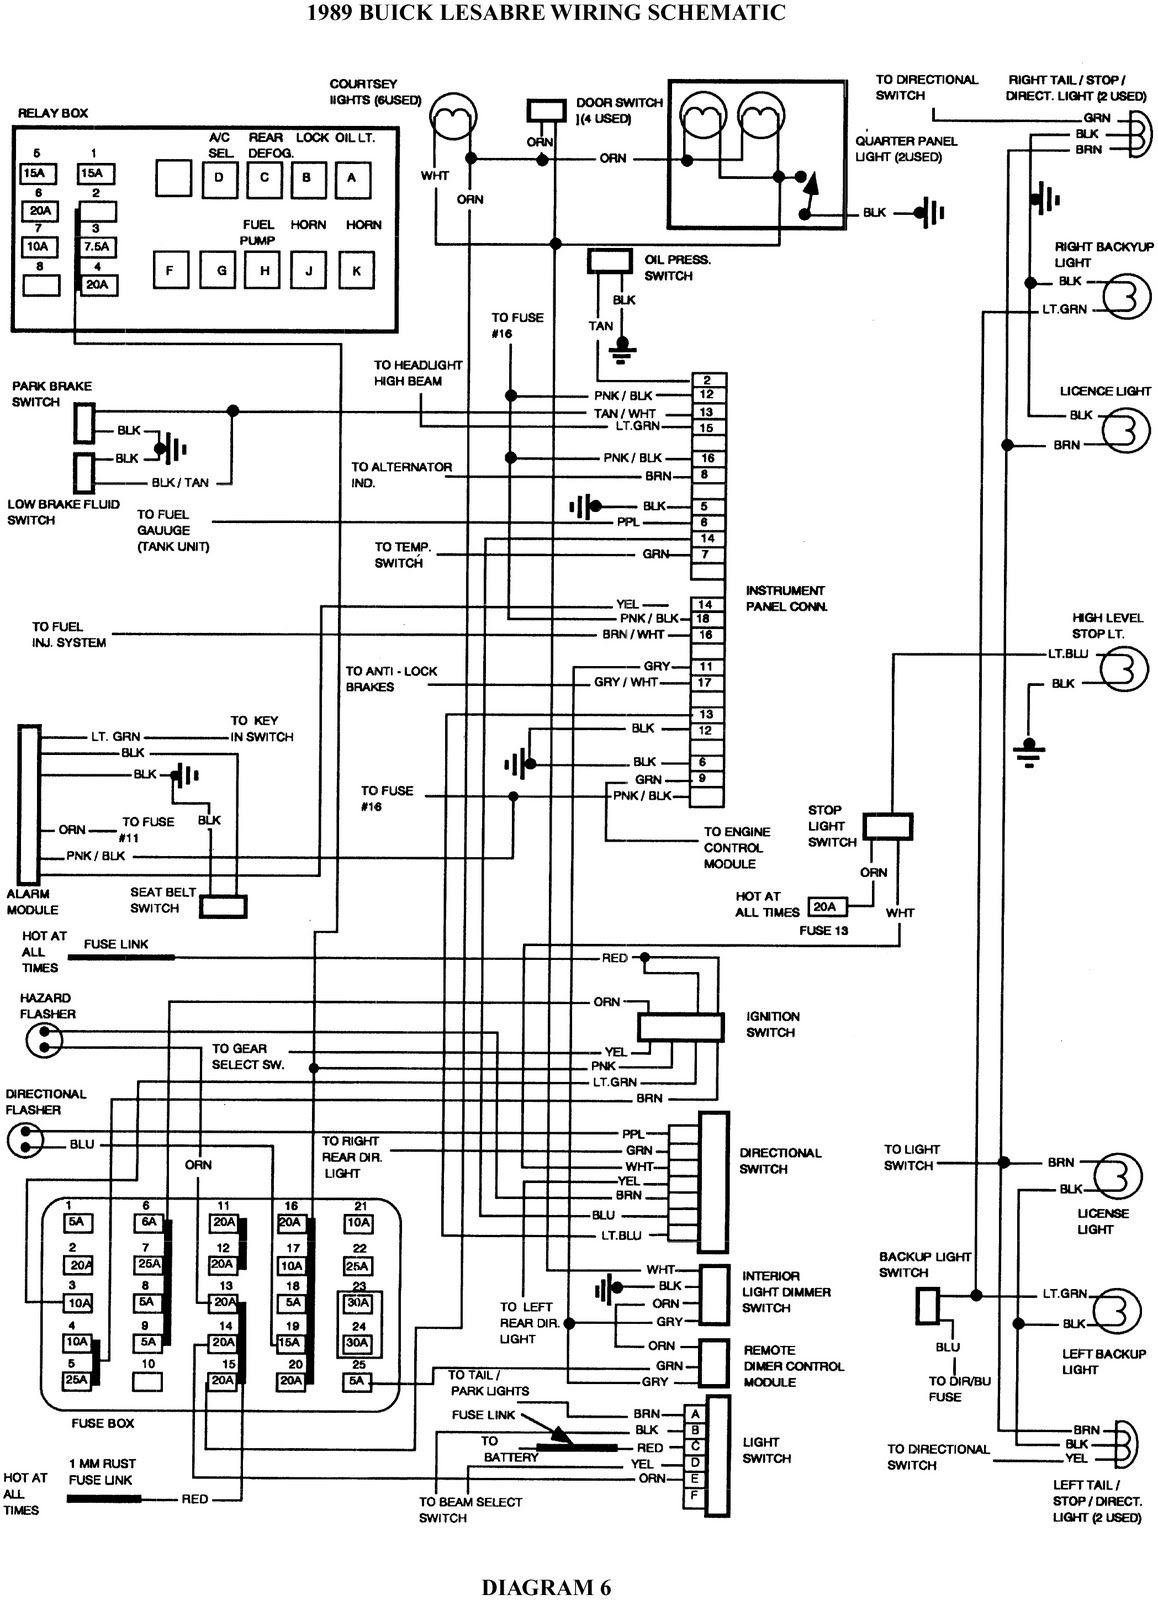 55 Fresh 2001 Buick Lesabre Radio Wiring Diagram in 2020 | Electrical  wiring diagram, Buick lesabre, BuickPinterest